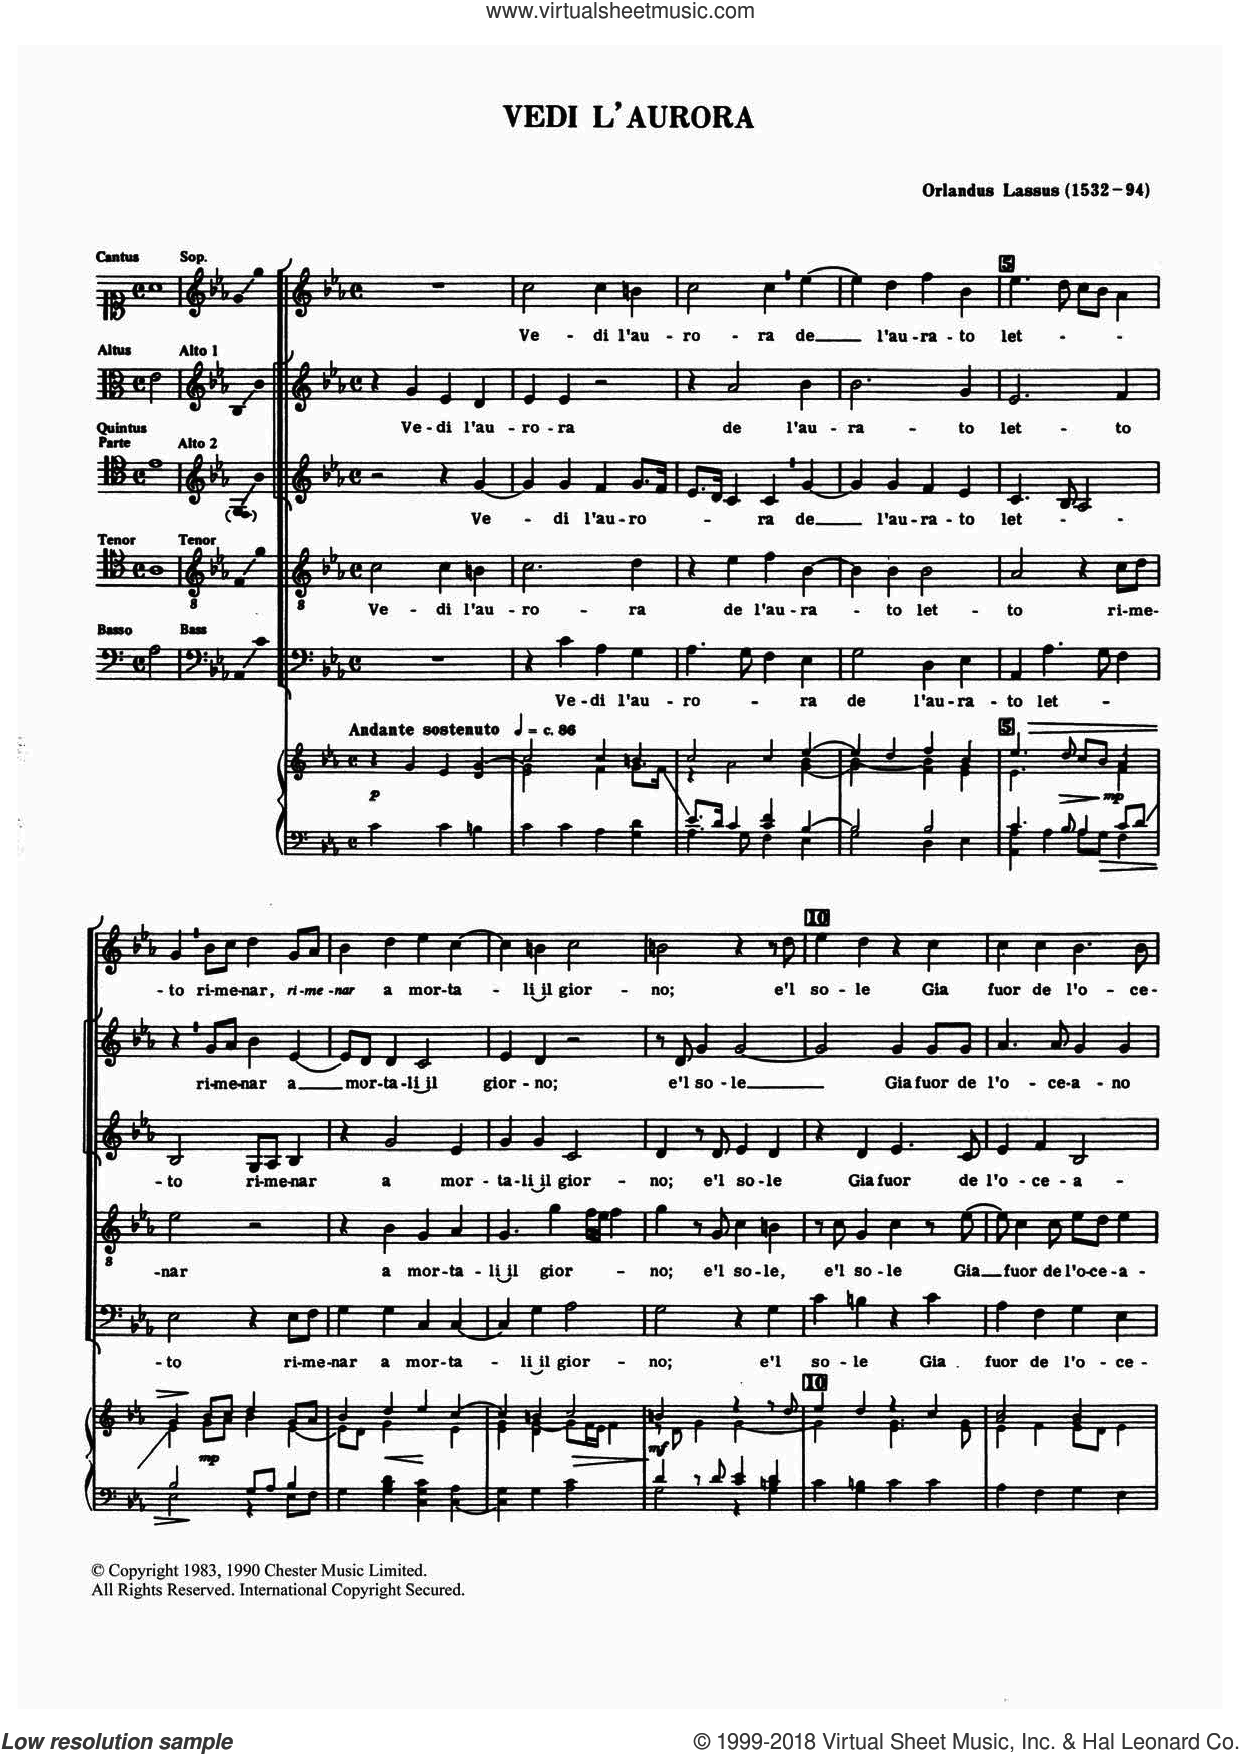 Vedi L'aurora sheet music for choir by Orlandus Lassus, Anthony Petti and Orlando Lassus, classical score, intermediate skill level